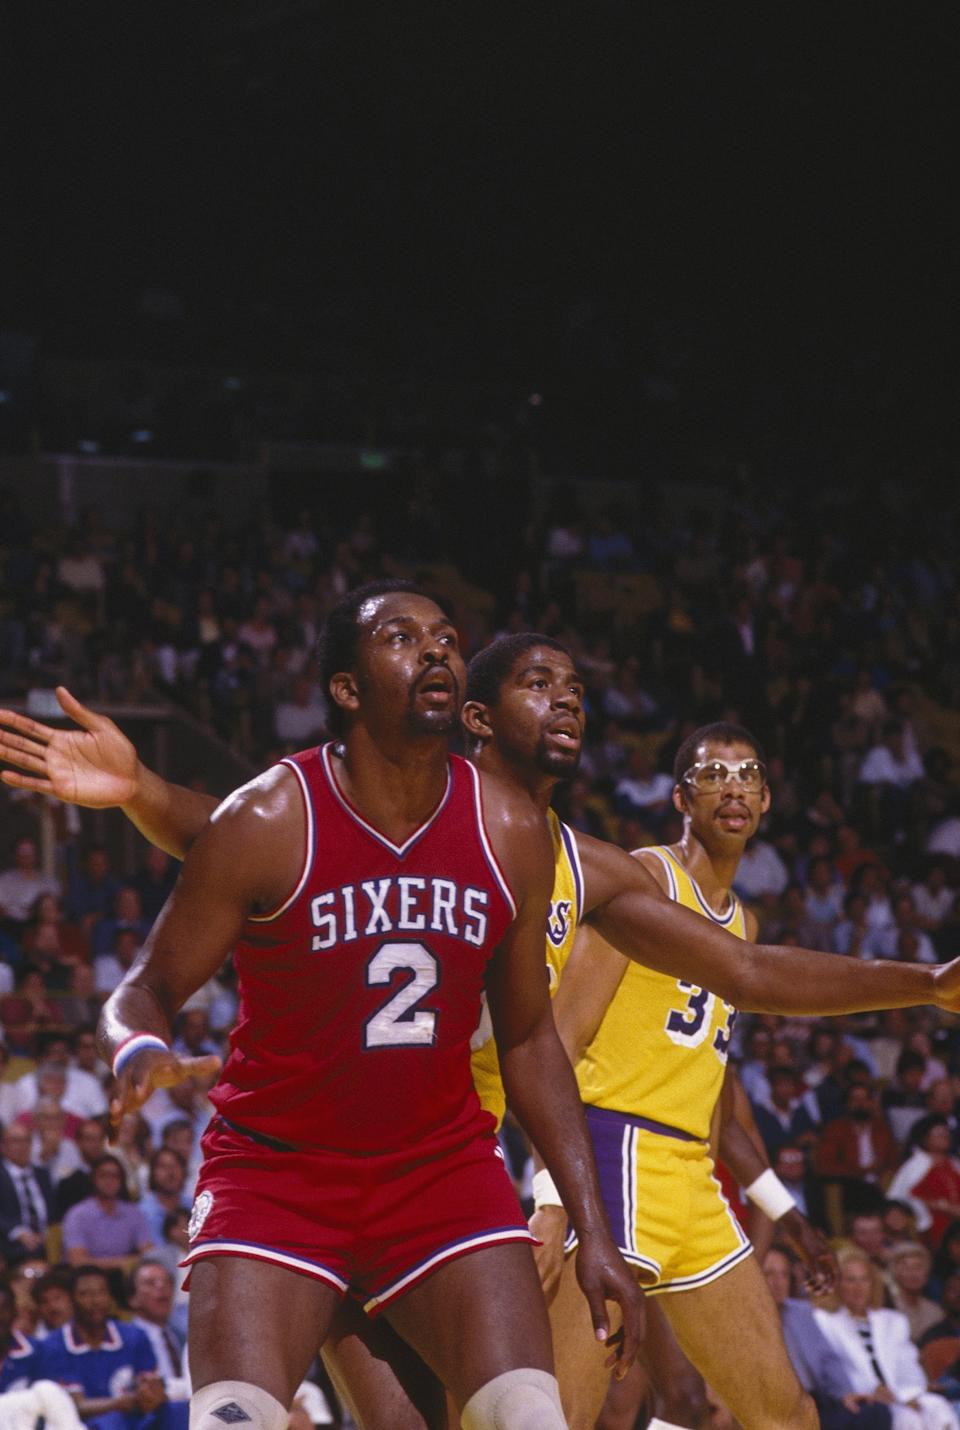 Moses Malone(紅衣2號)的交易為費城76人拿下冠軍。(Photo by Focus on Sport via Getty Images)